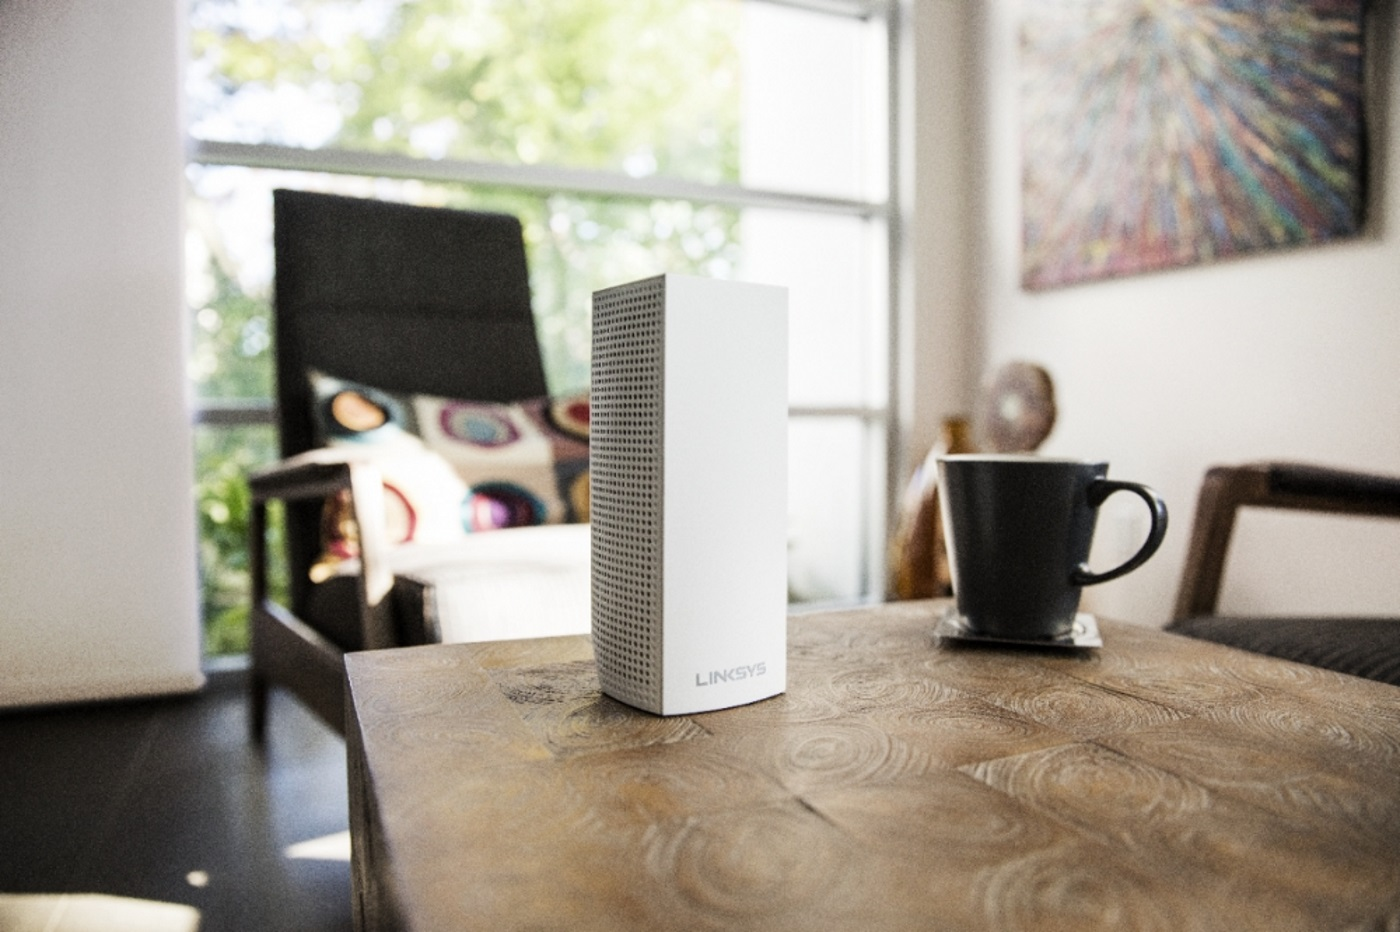 router Velop